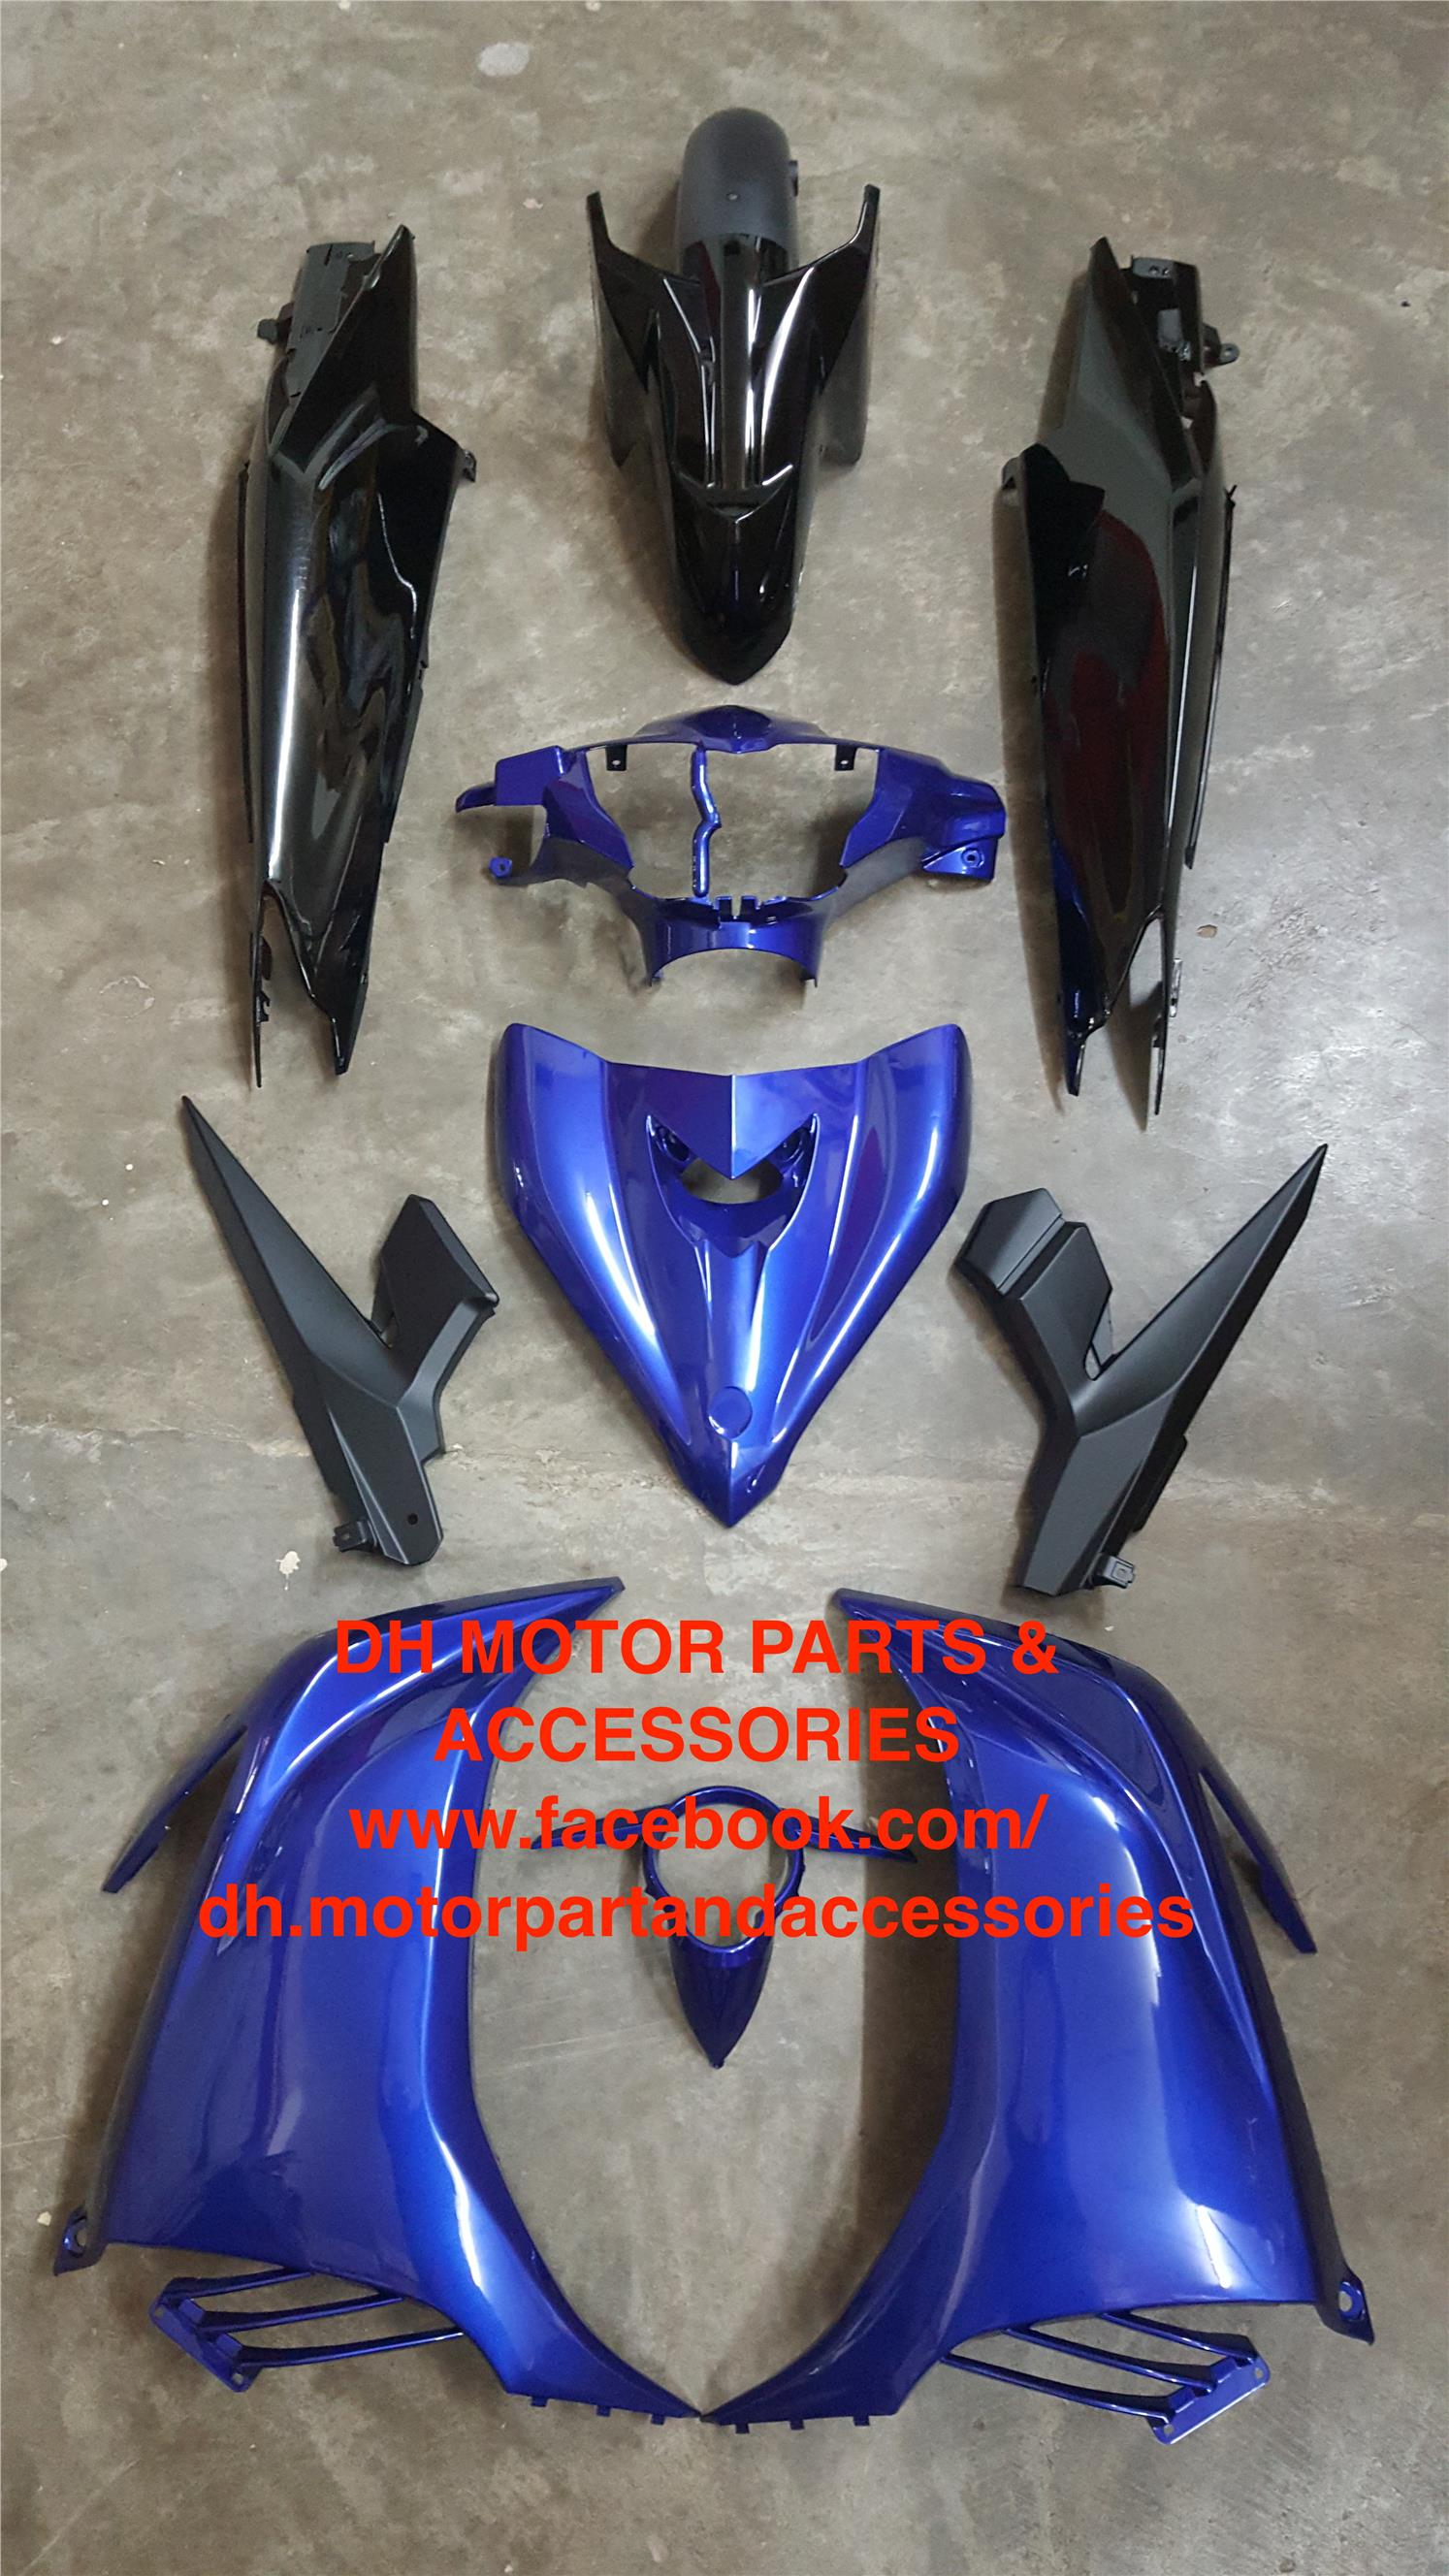 LC135 V3 55C (CLUTCH) COVER SET (DPBMC BLUE + BLACK)